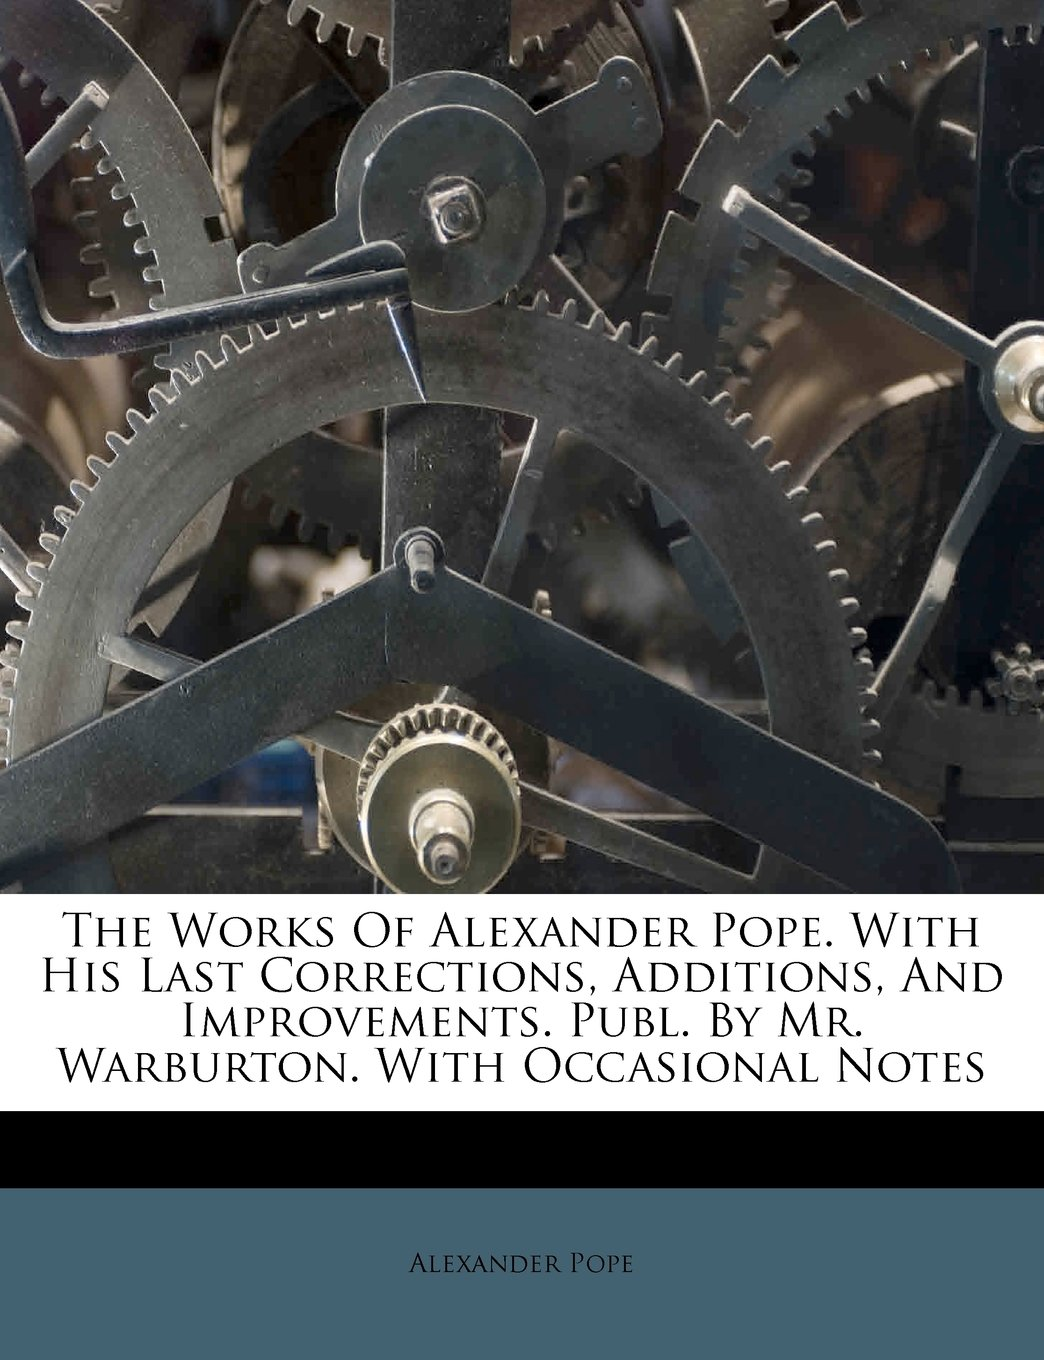 Download The Works Of Alexander Pope. With His Last Corrections, Additions, And Improvements. Publ. By Mr. Warburton. With Occasional Notes pdf